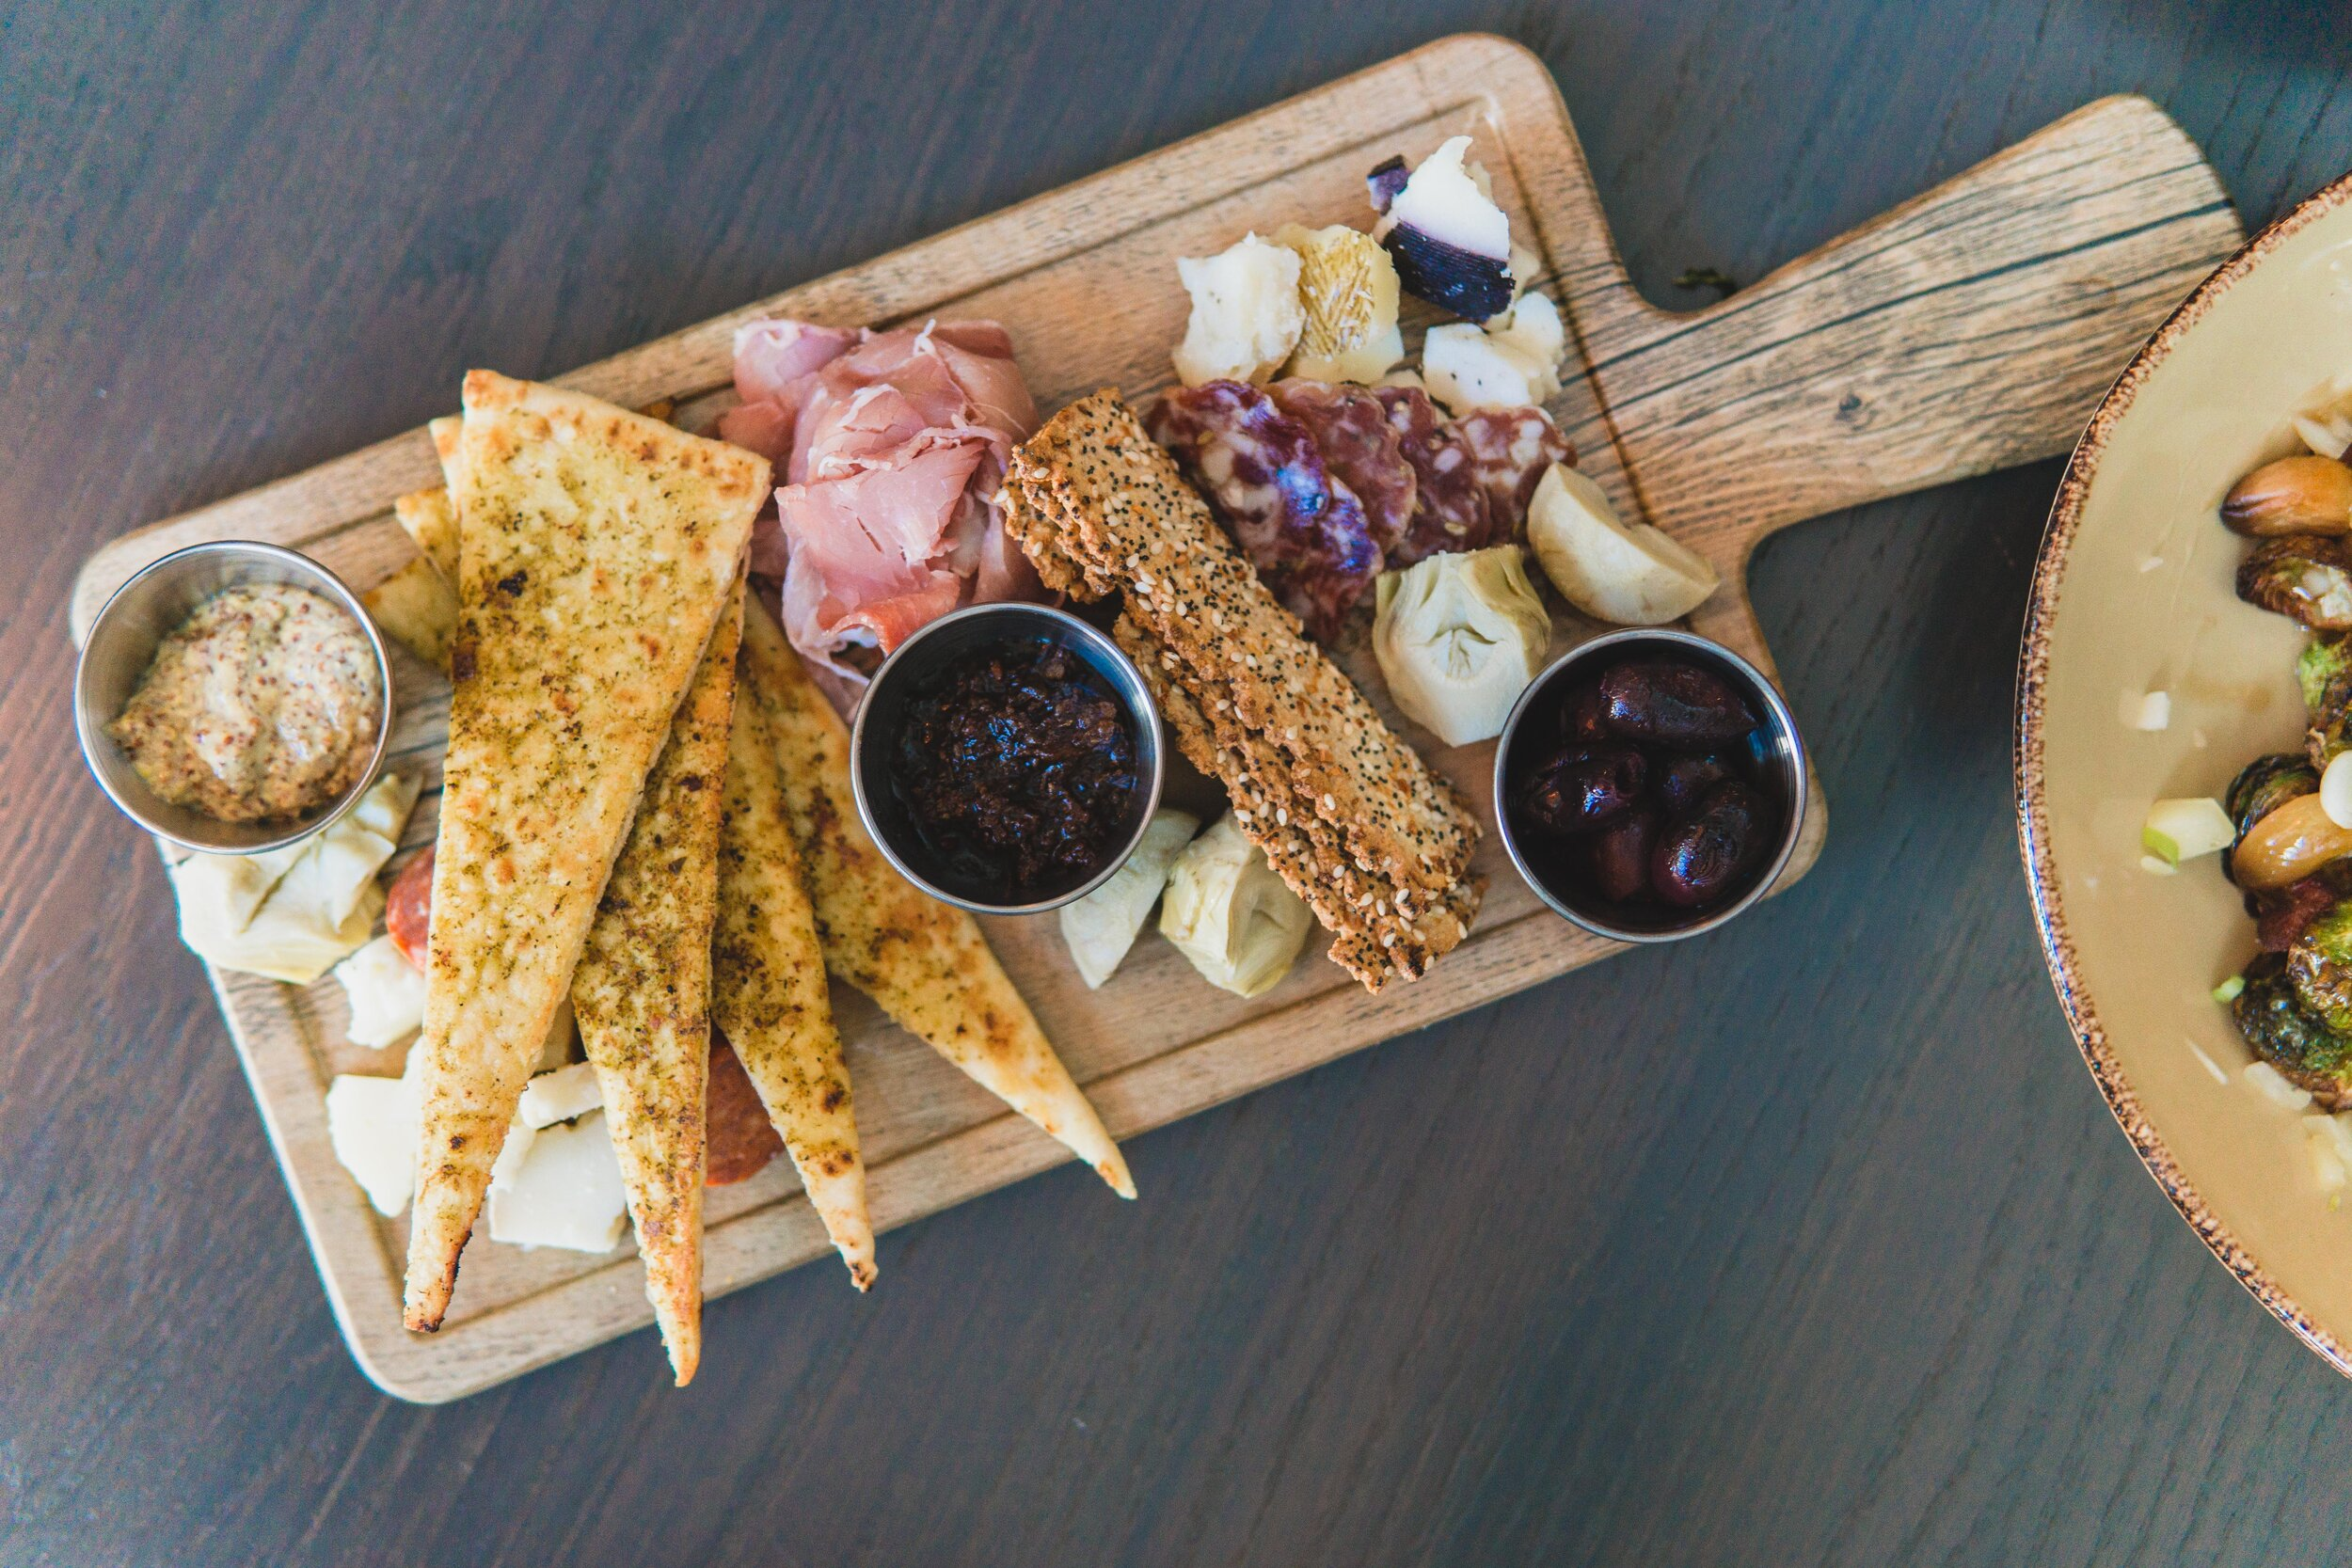 Half Chef's Charcuterie: Spanish cured meats & aged cheese, flatbread crackers, tomato bacon jam, creole mustard & marinated olives